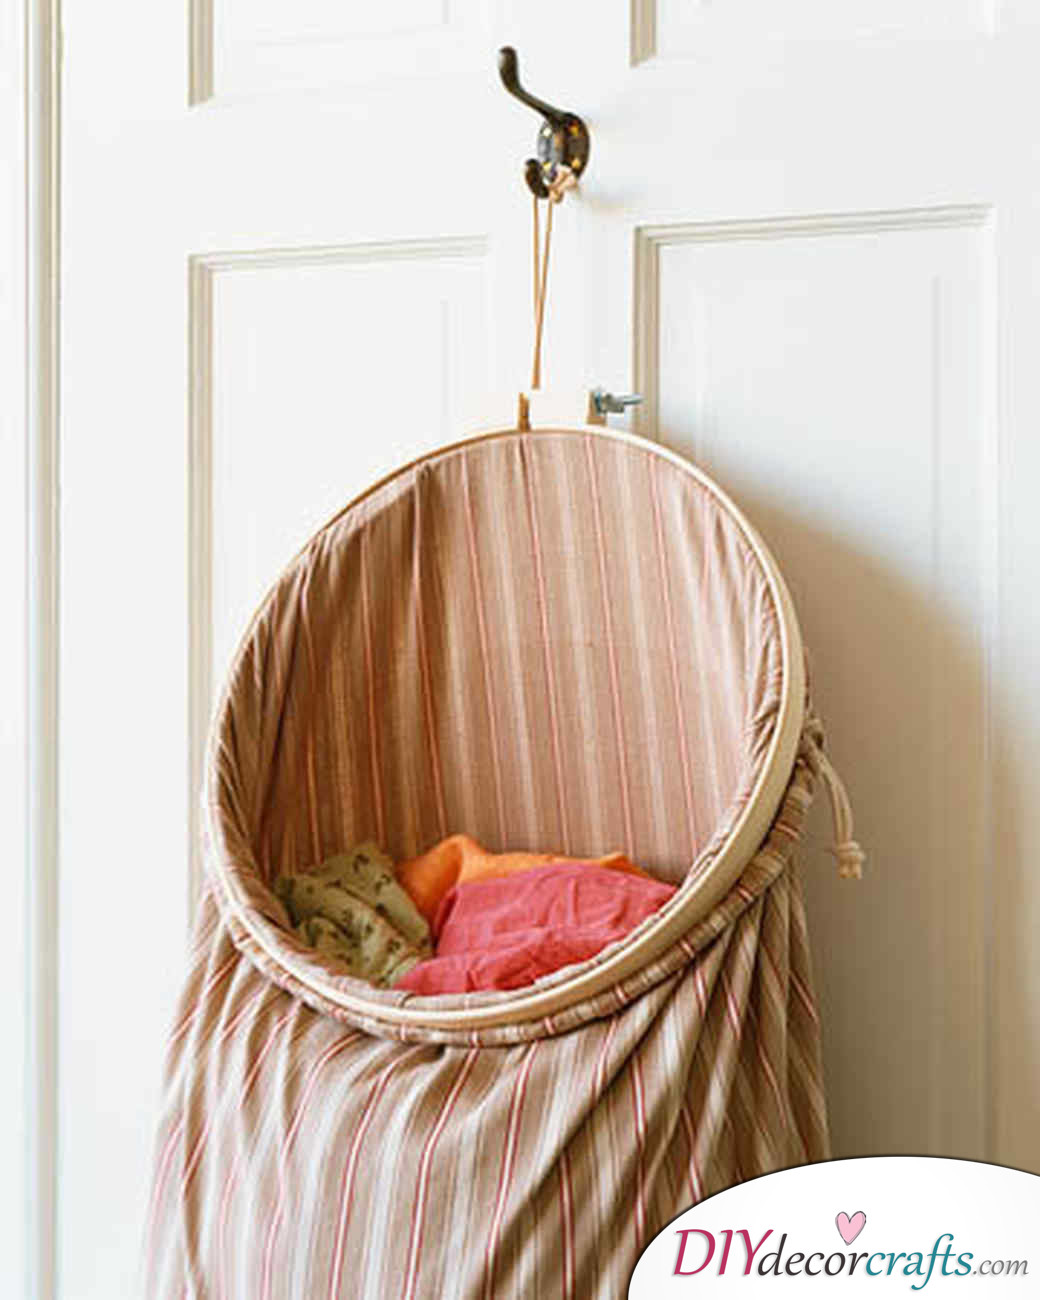 10 Amazing DIY Dorm Room Ideas To Spice Things Up Next Semester, Pillowcase Laundry Bag